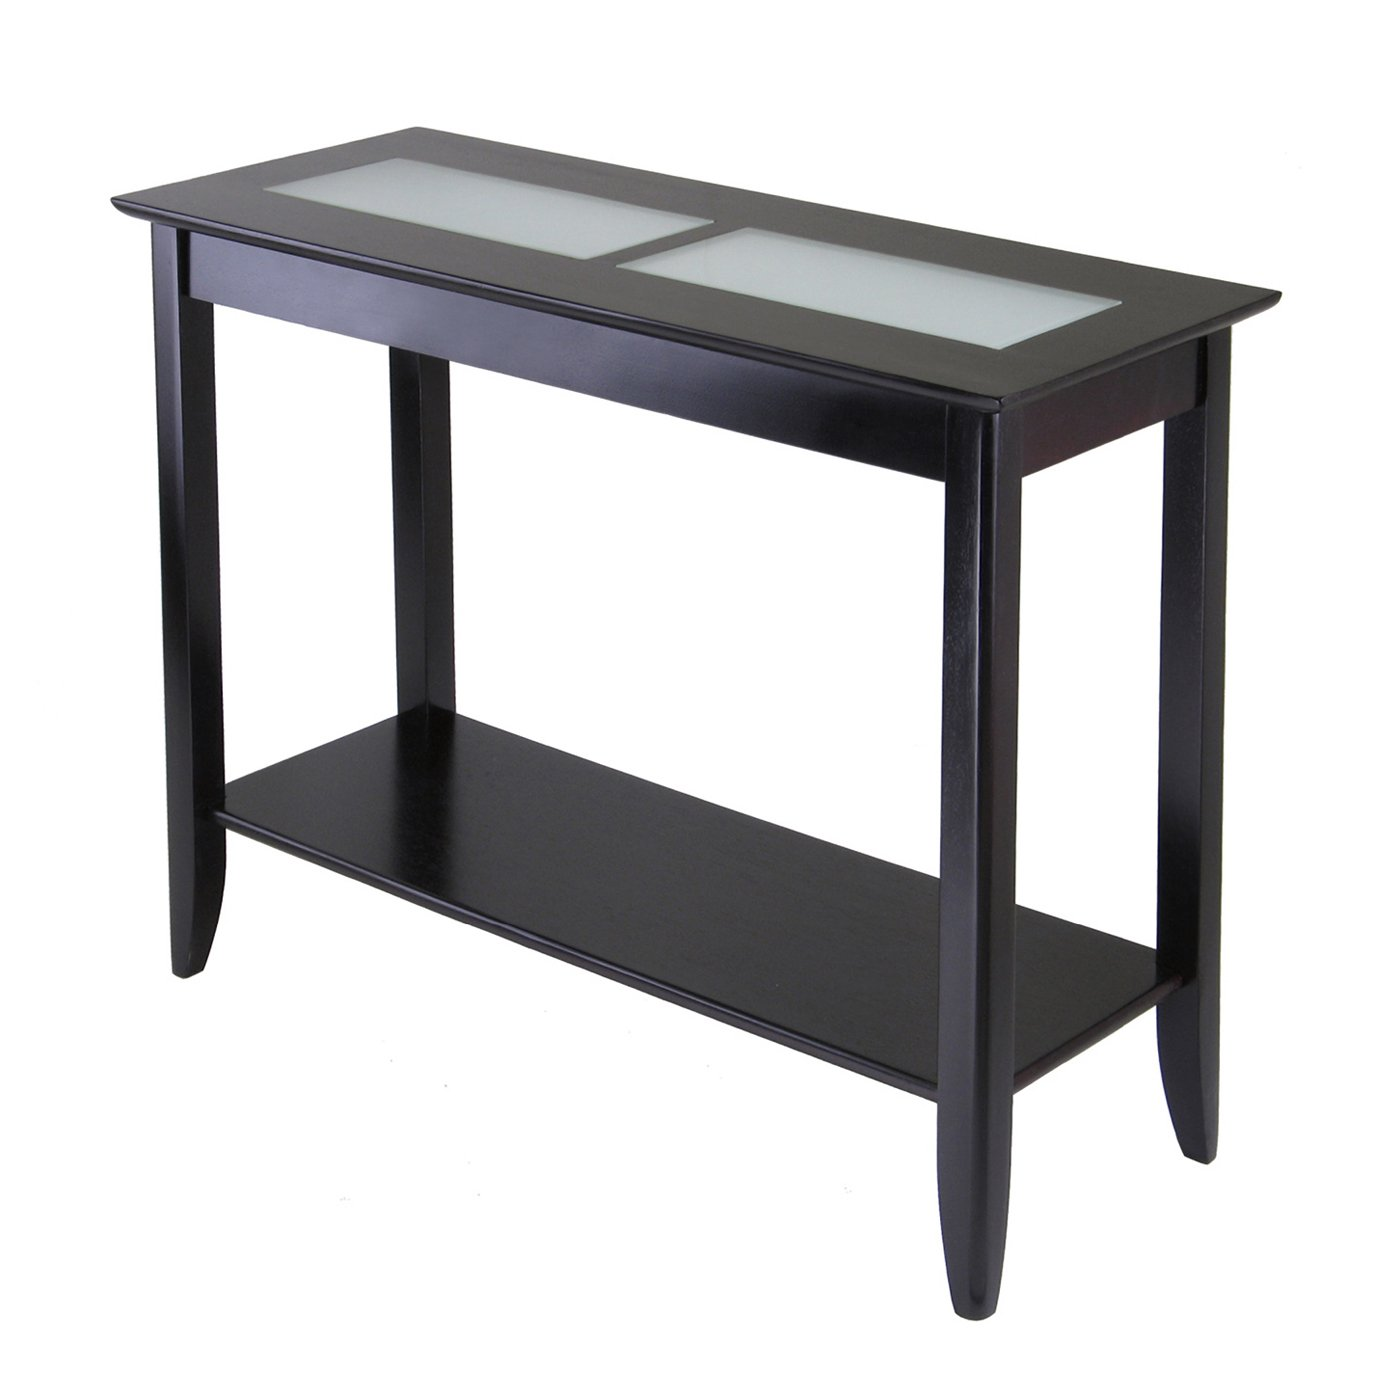 top lewis target gold outdoor calico amazing hafley white hillside mirrored bamboo remarkable black console glass tables table owings accent full size agate ceramic end garden